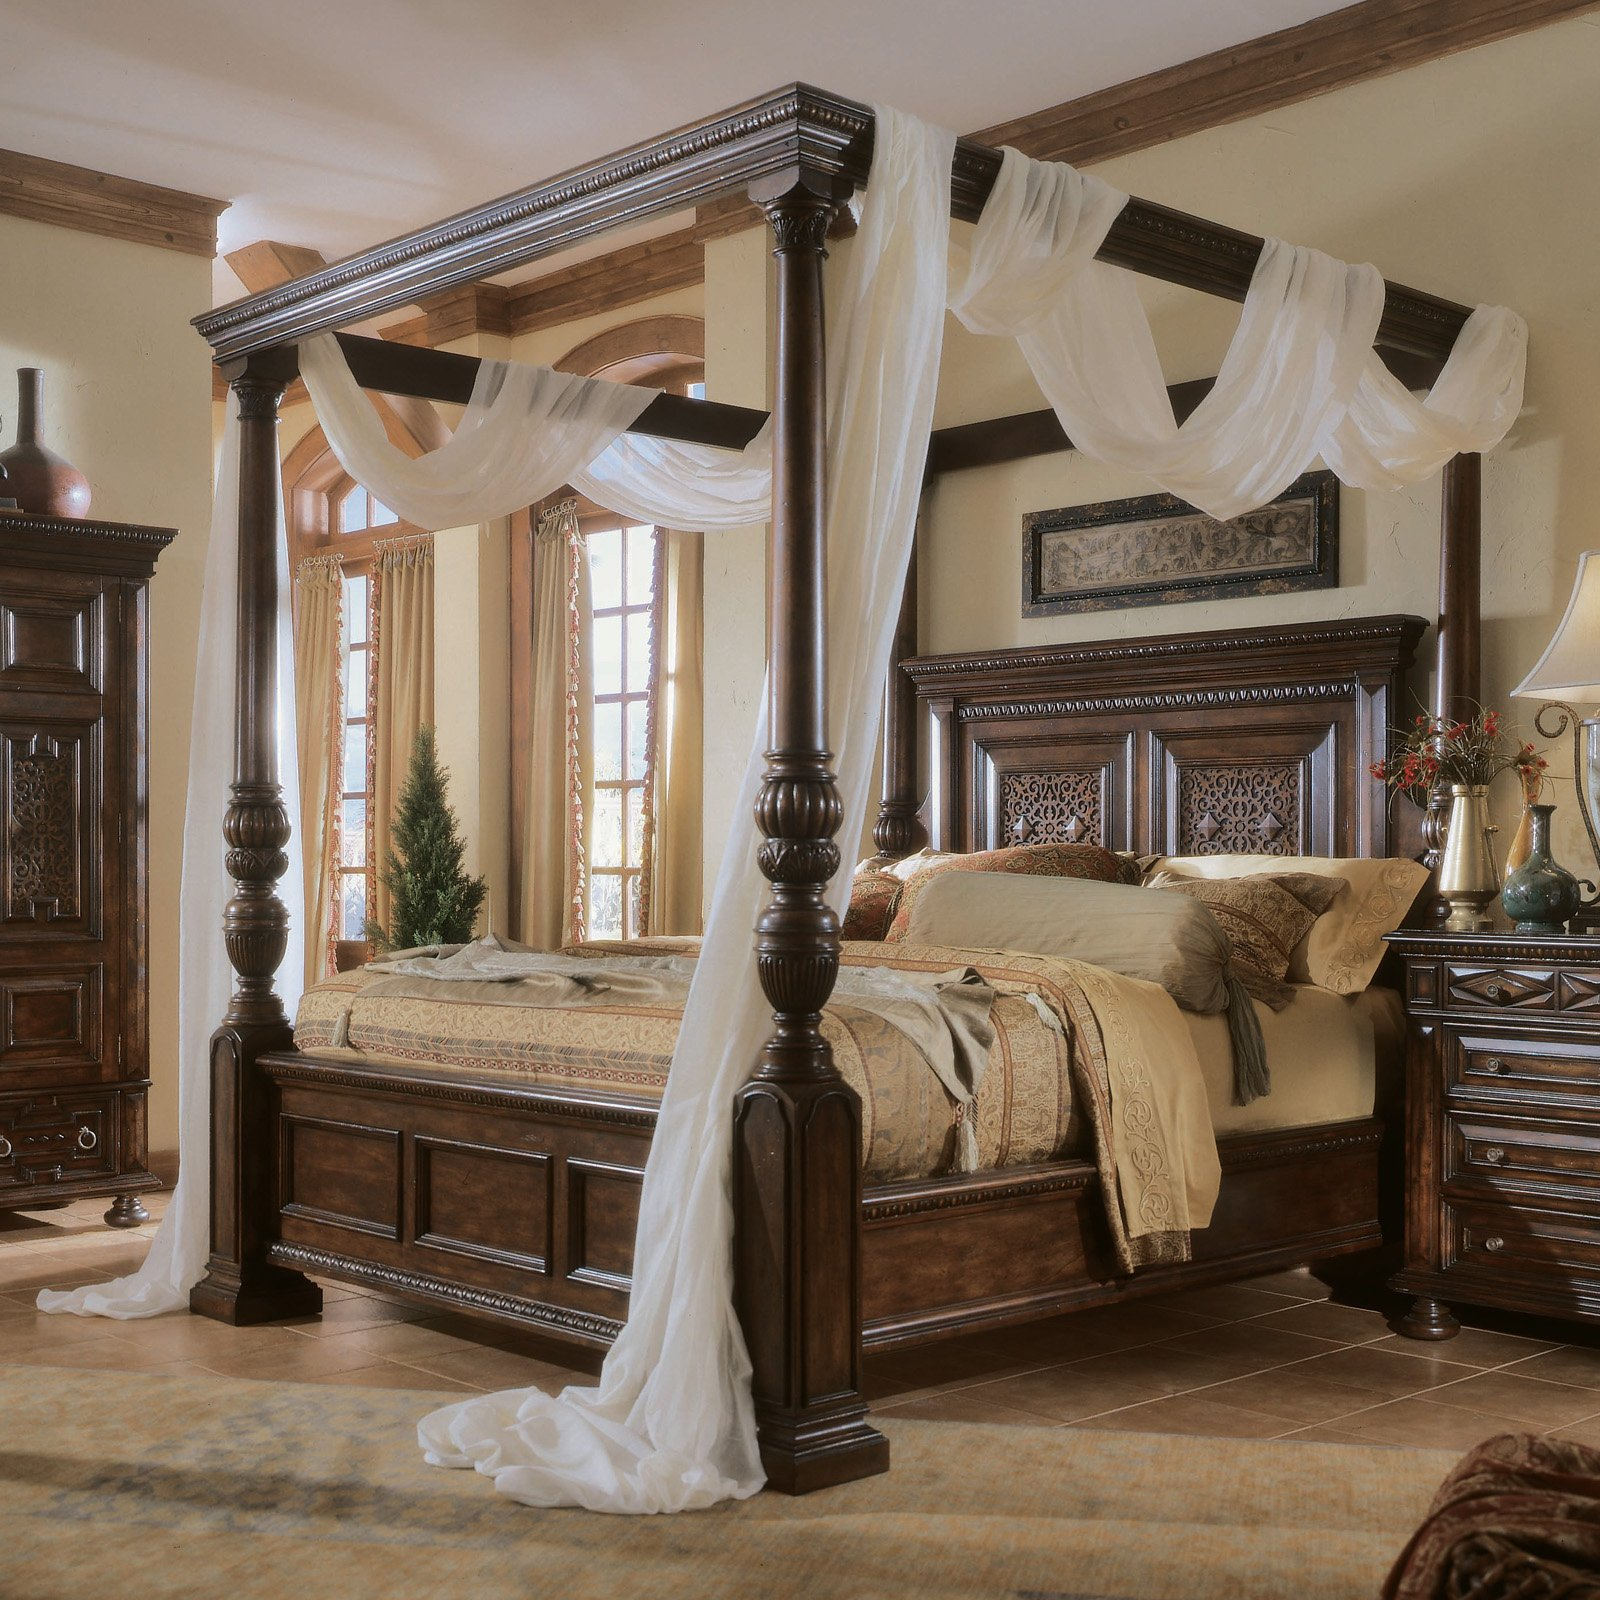 Interior design home decor furniture furnishings - Pictures of canopy beds ...